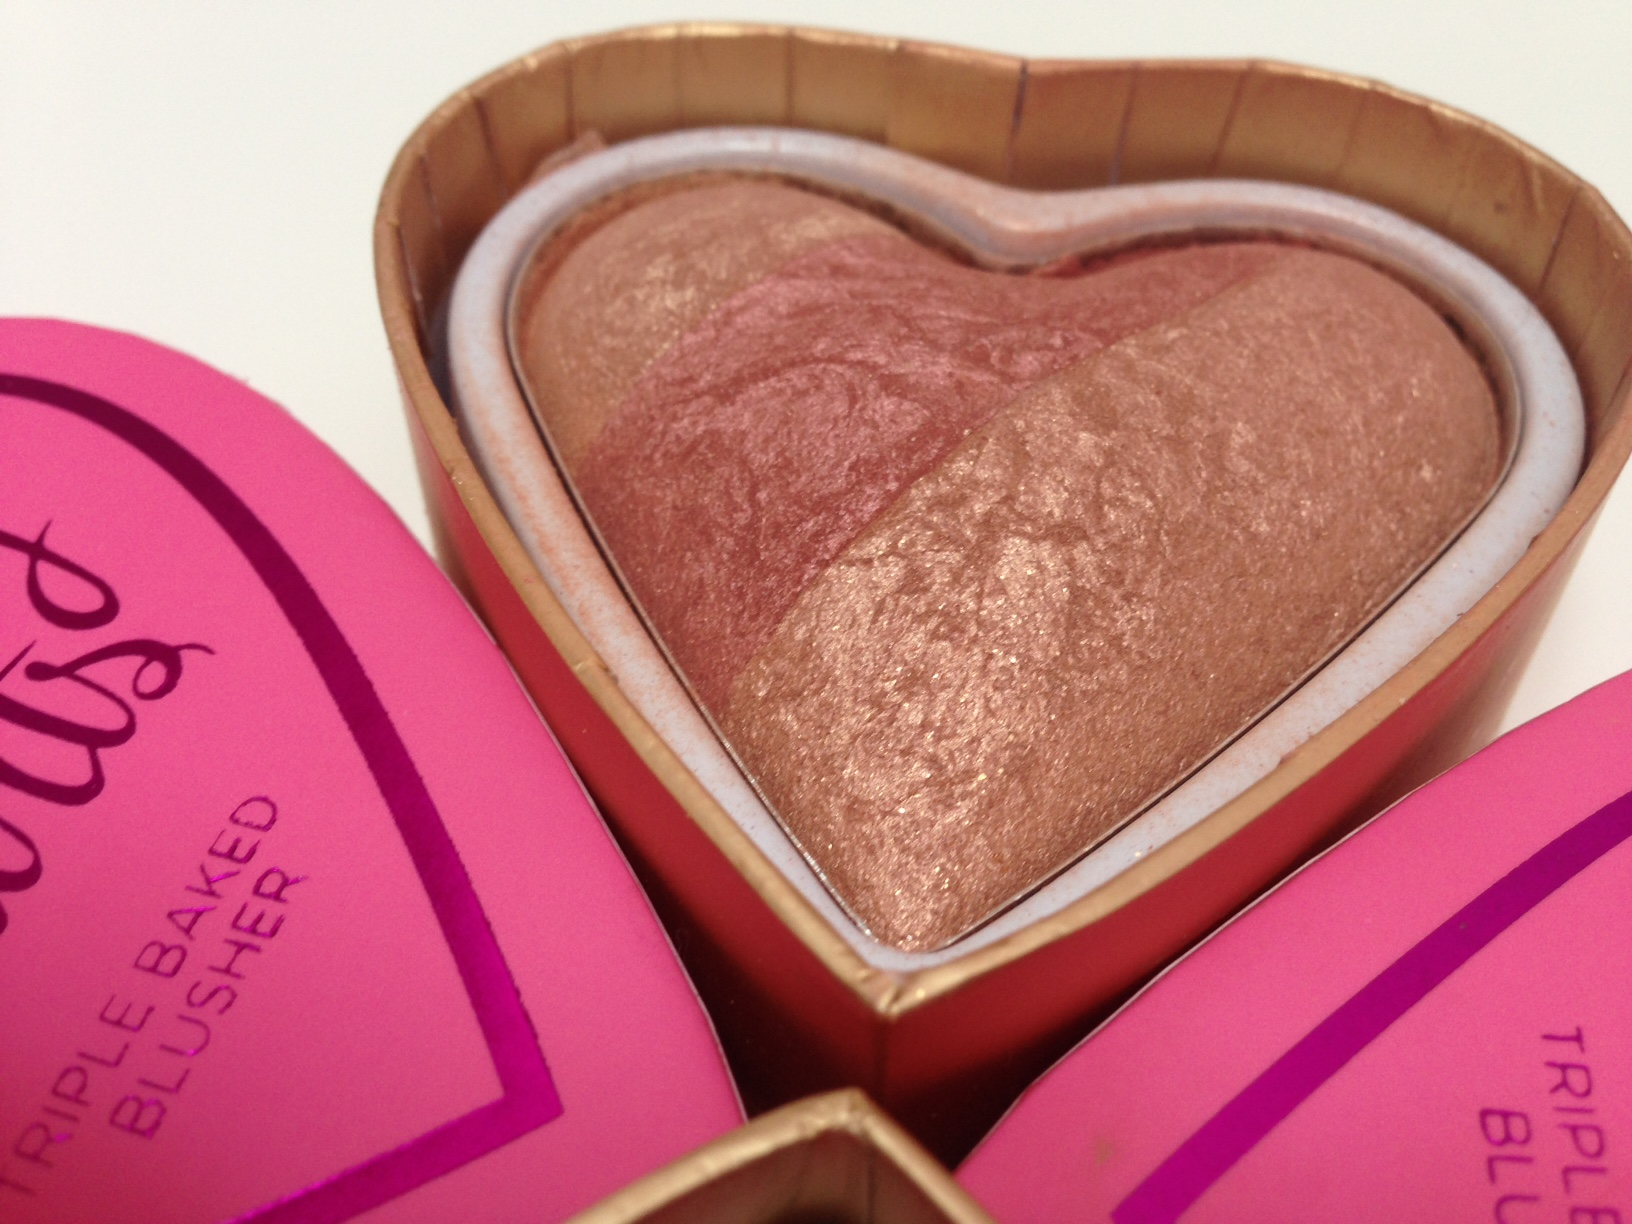 i-heart-makeup-blushing-hearts-peachy-keen-blusher